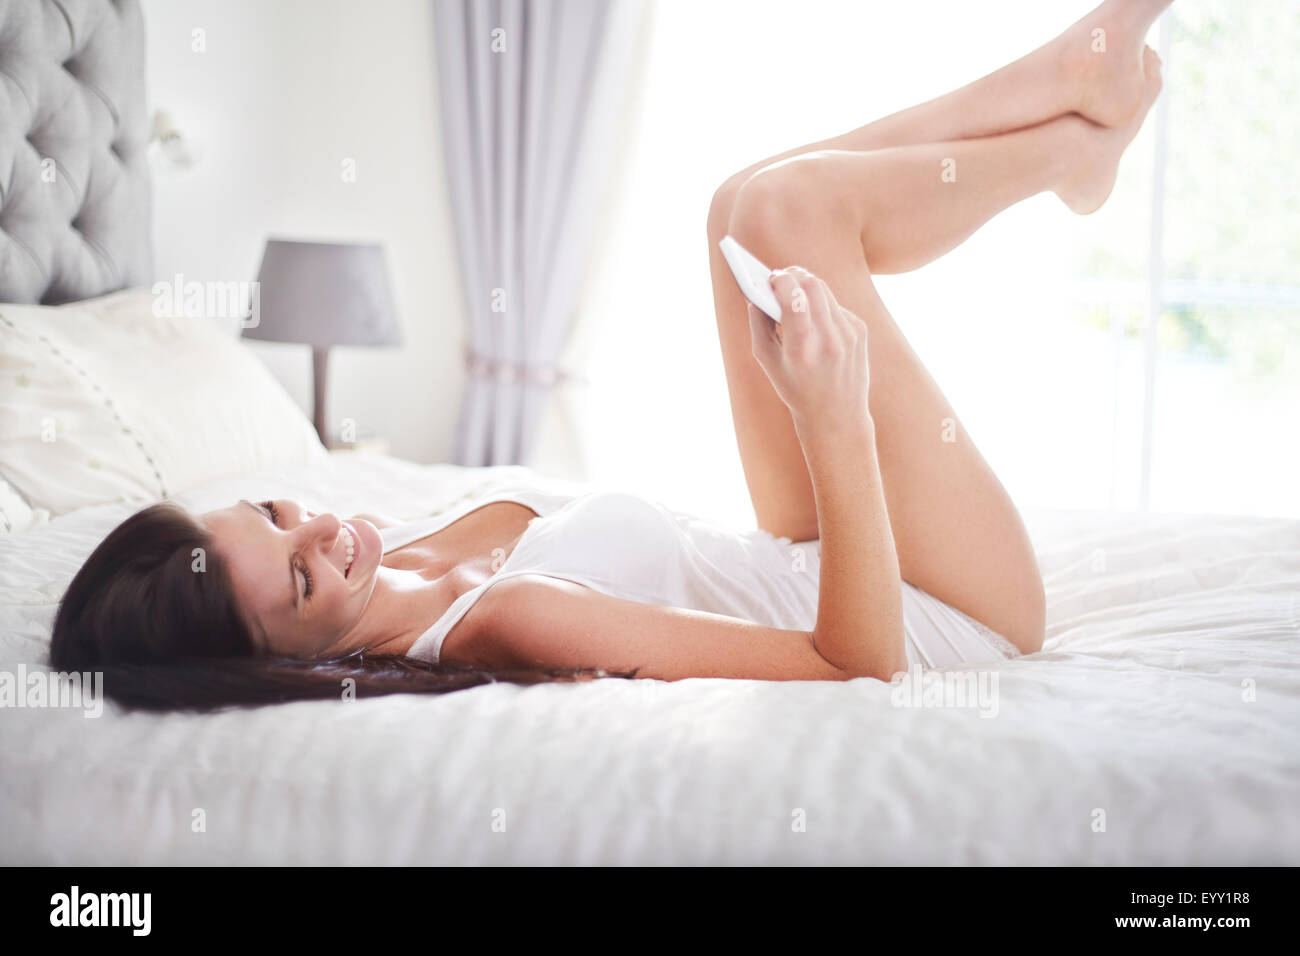 girl texting in bed